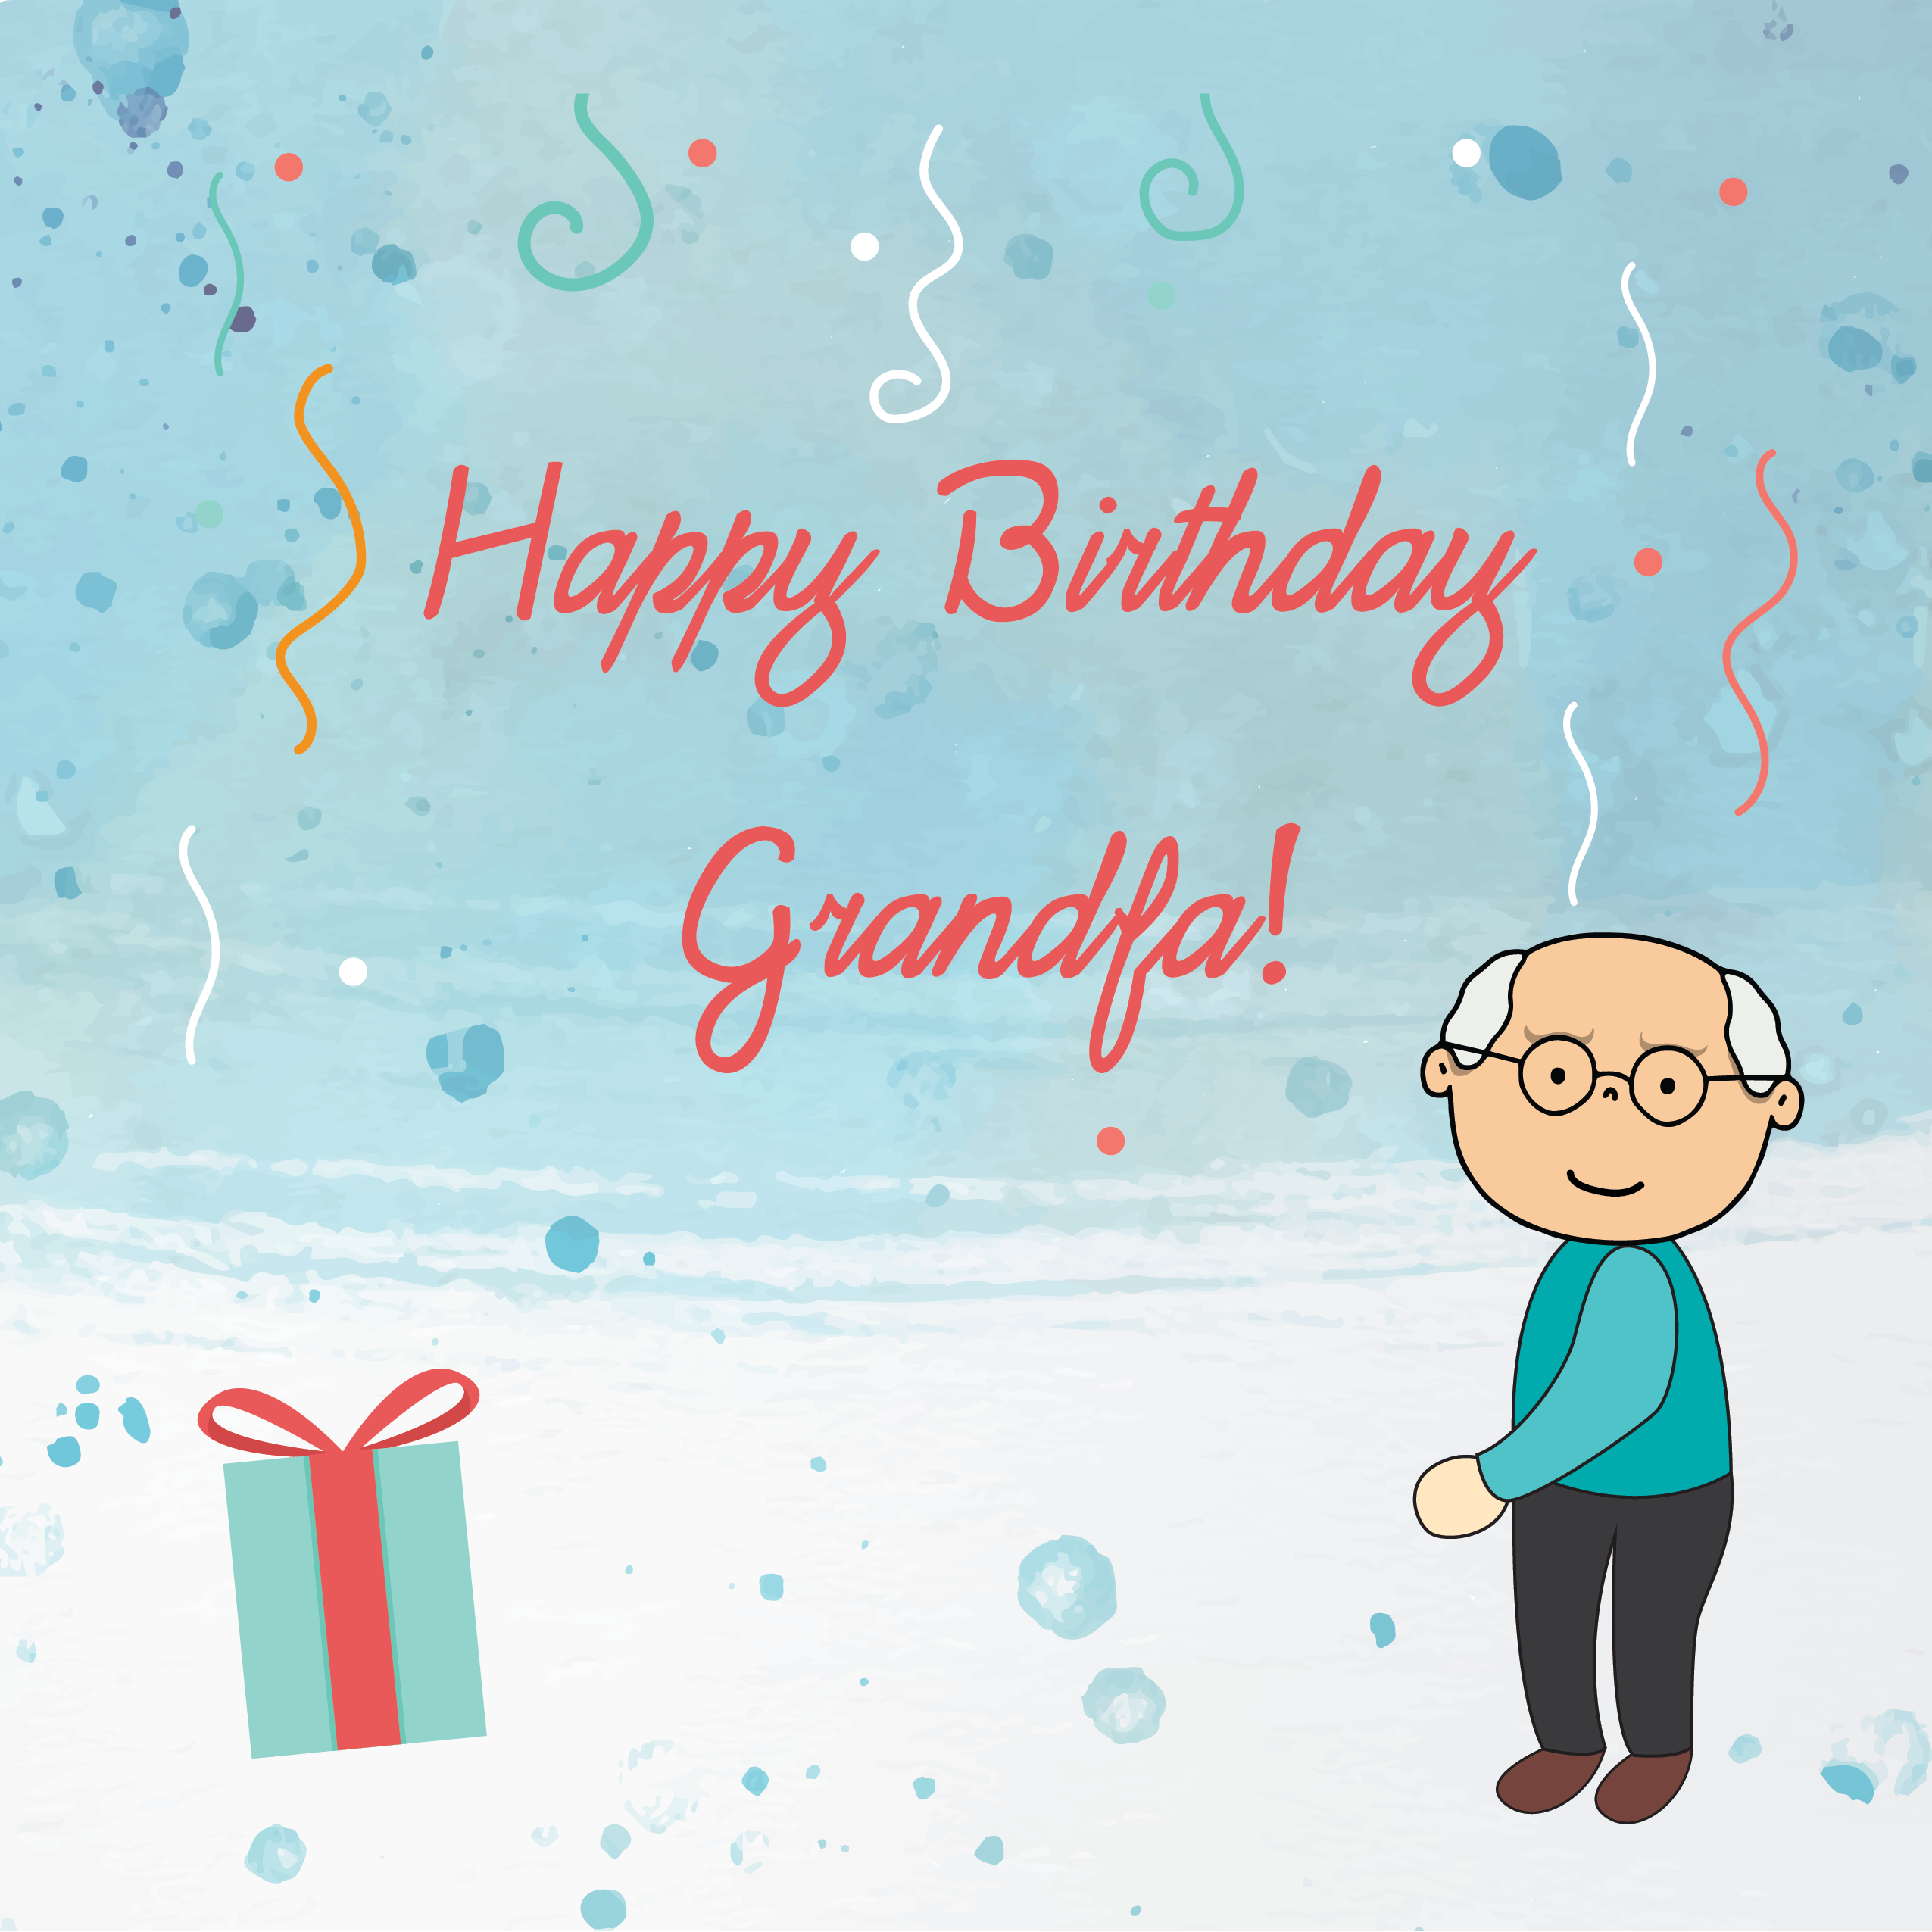 200 Happy Birthday Wishes & Quotes With Funny & Cute